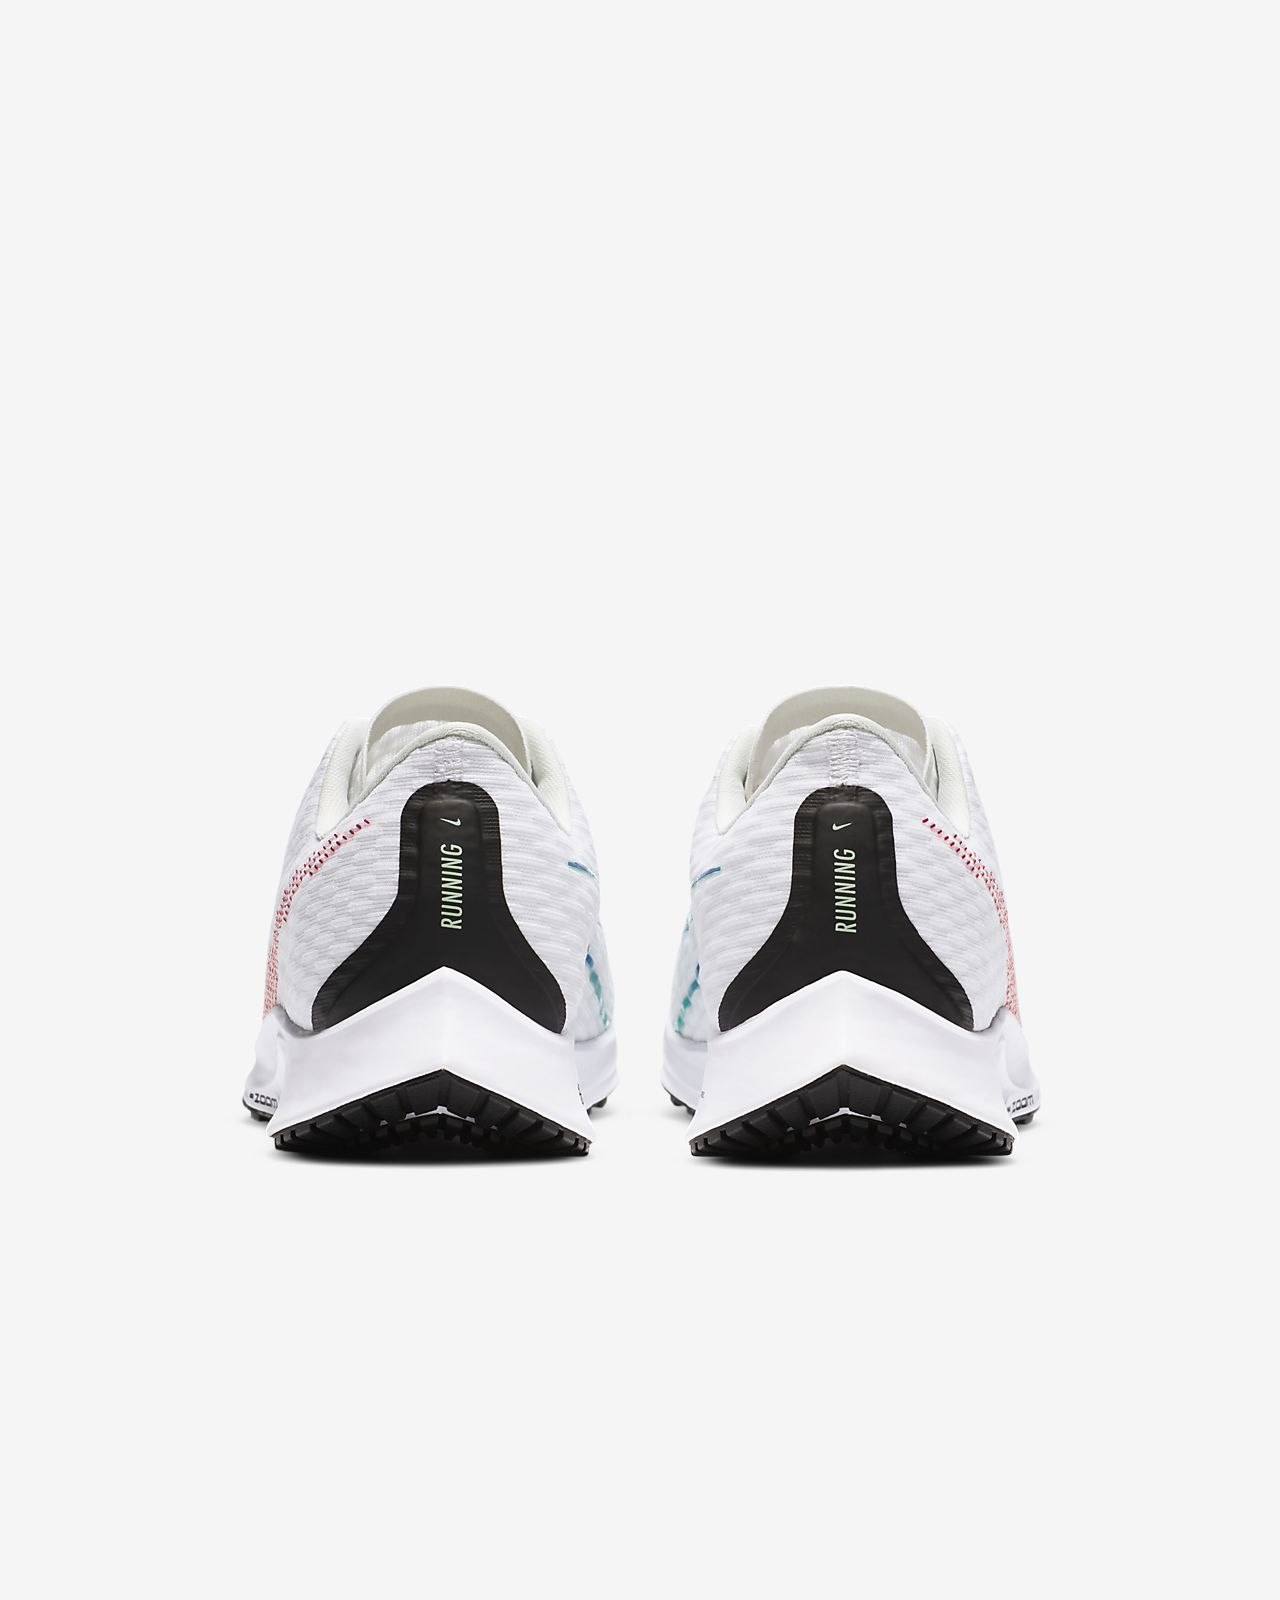 Chaussure de running Nike Zoom Rival Fly 2 pour Femme. Nike FR